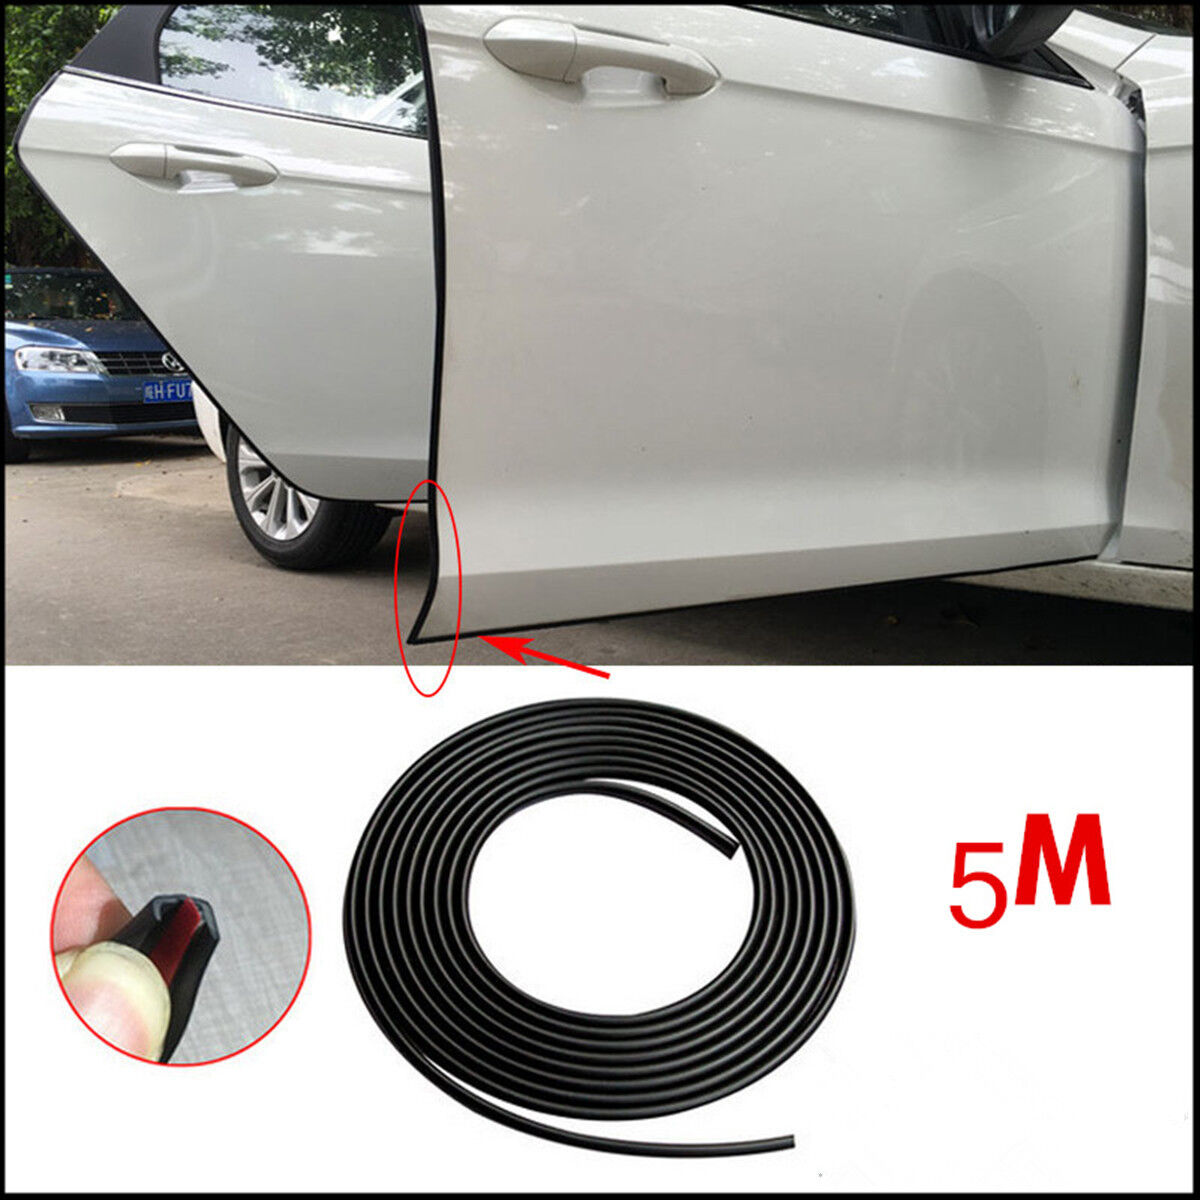 16FT/5M Car/Truck Adhensive Door Edge Guard Scratch Protector Molding Strip Trim